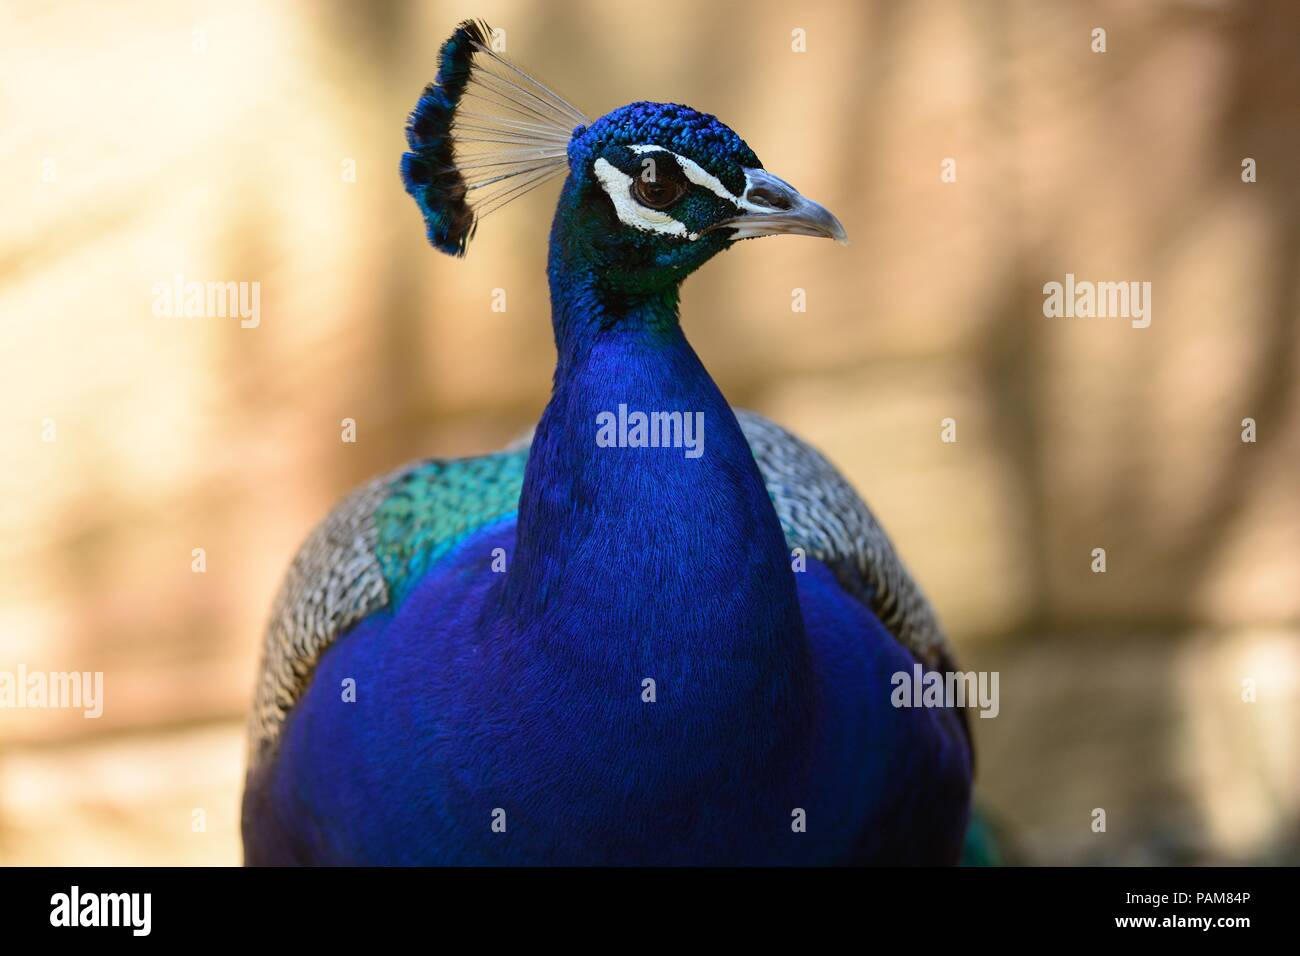 head shot of a peacock - Stock Image